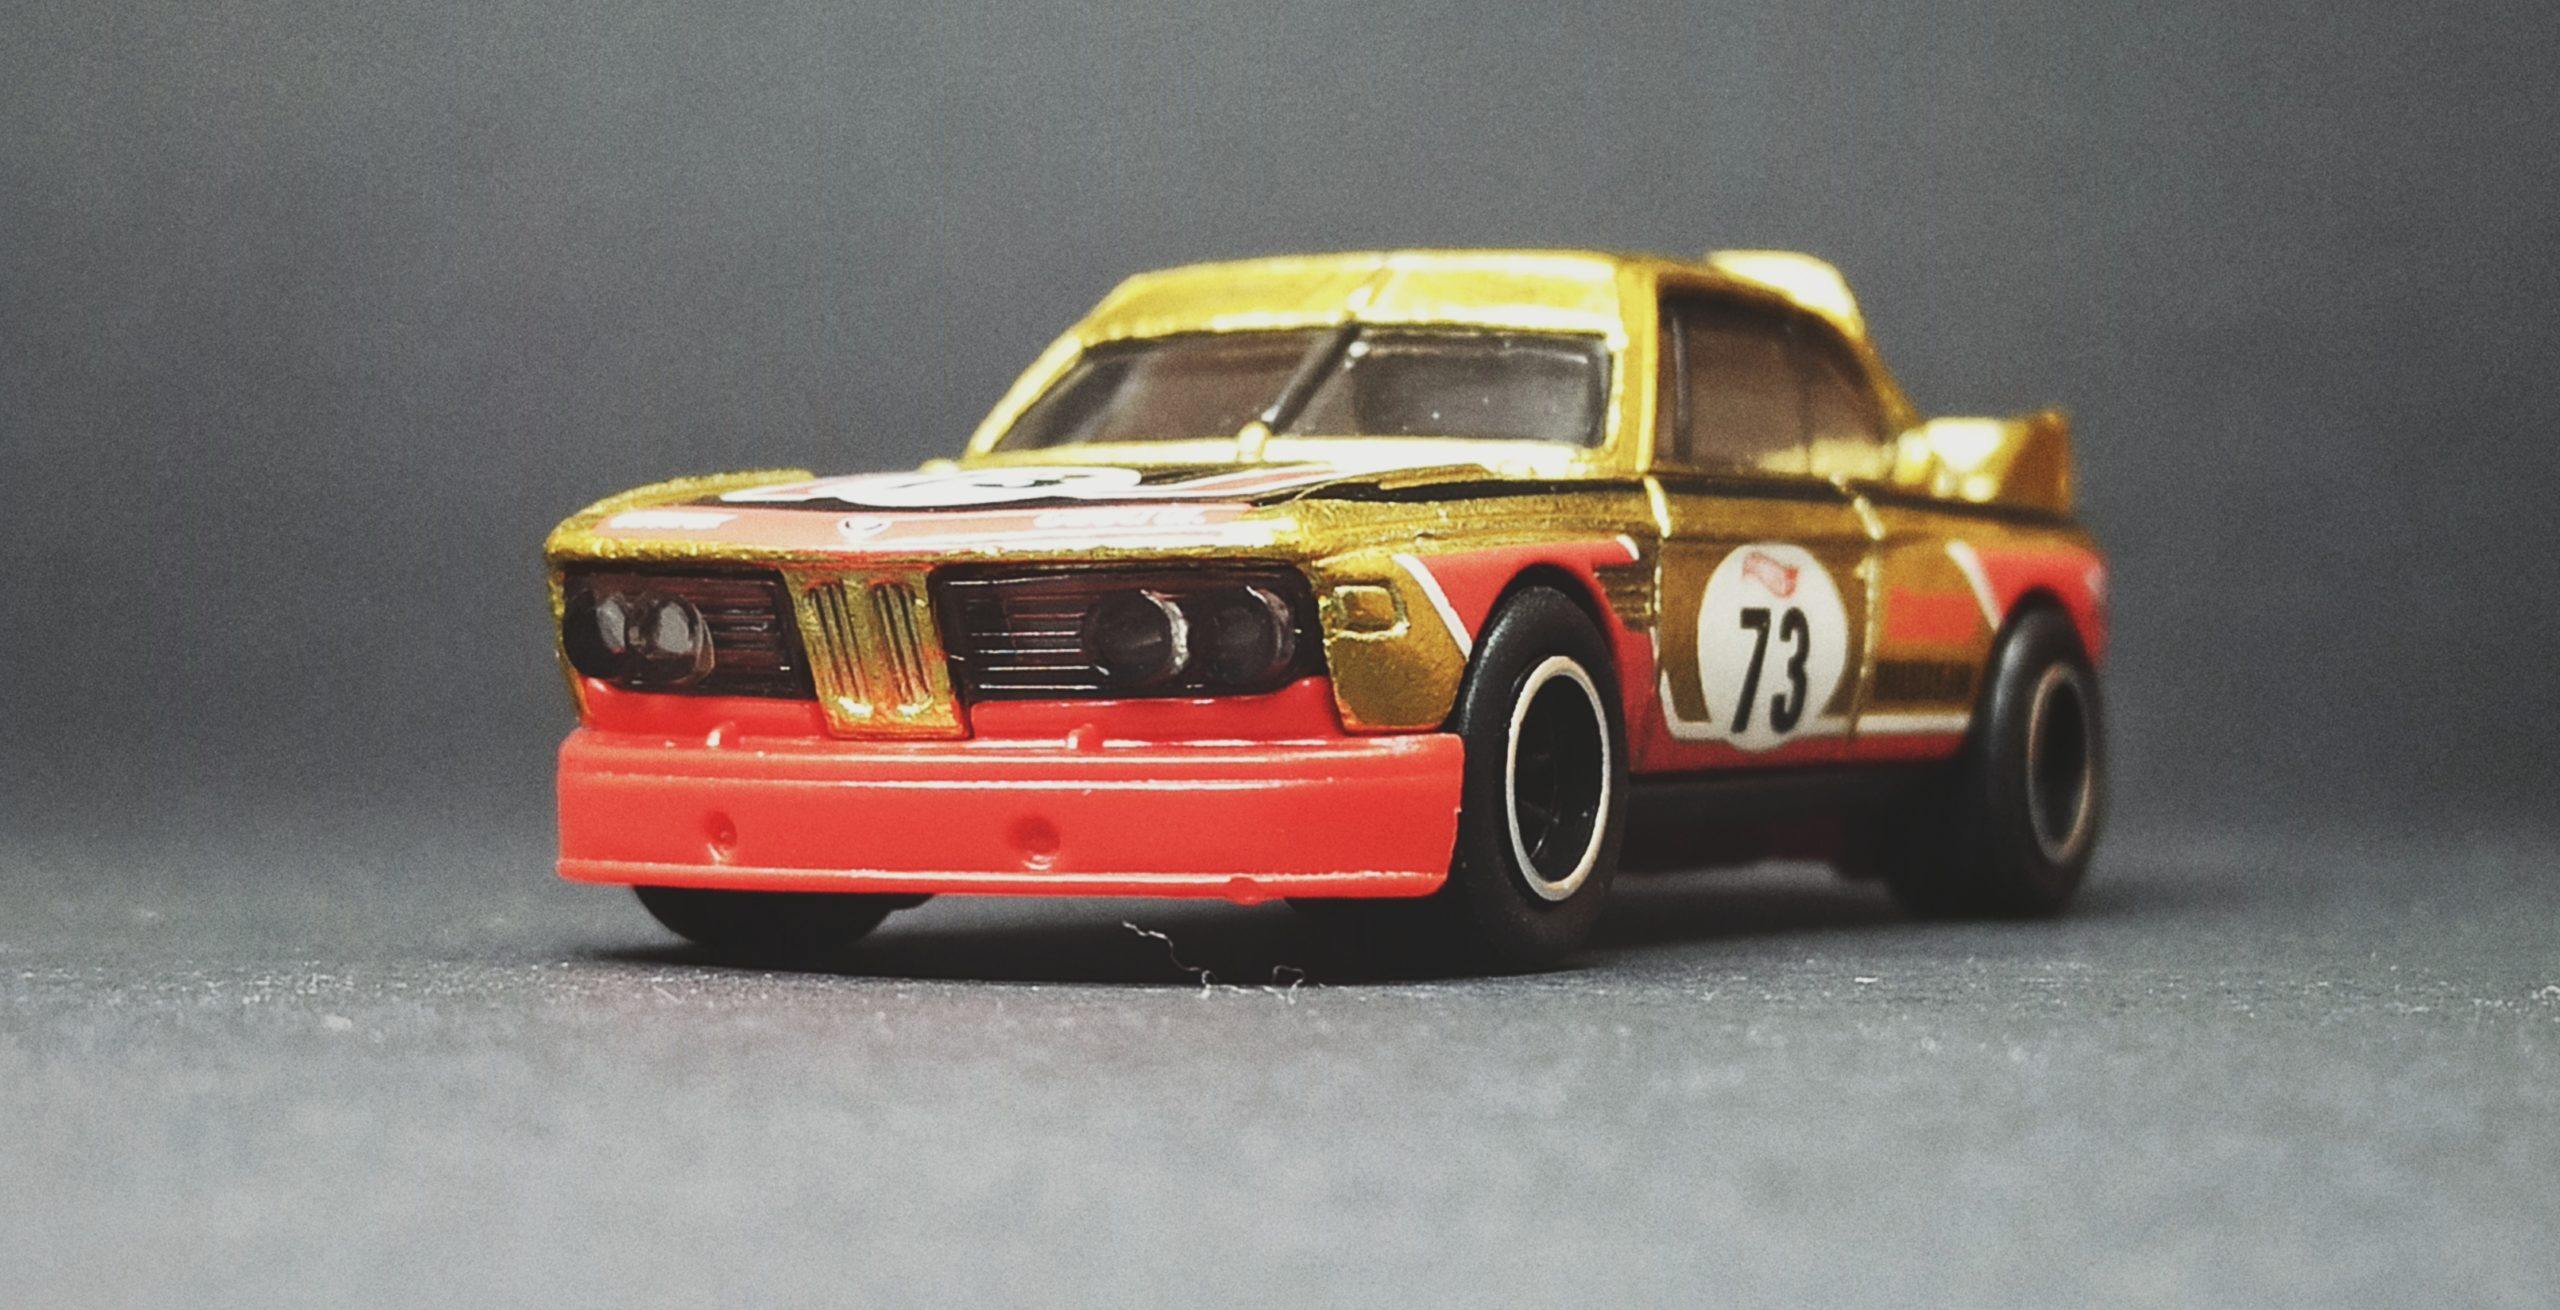 Hot Wheels '73 BMW 3.0 CSL Race Car (HCY20) 2022 (34/250) Retro Racers (2/10) spectraflame yellow (gold) Super Treasure Hunt (STH) front angle